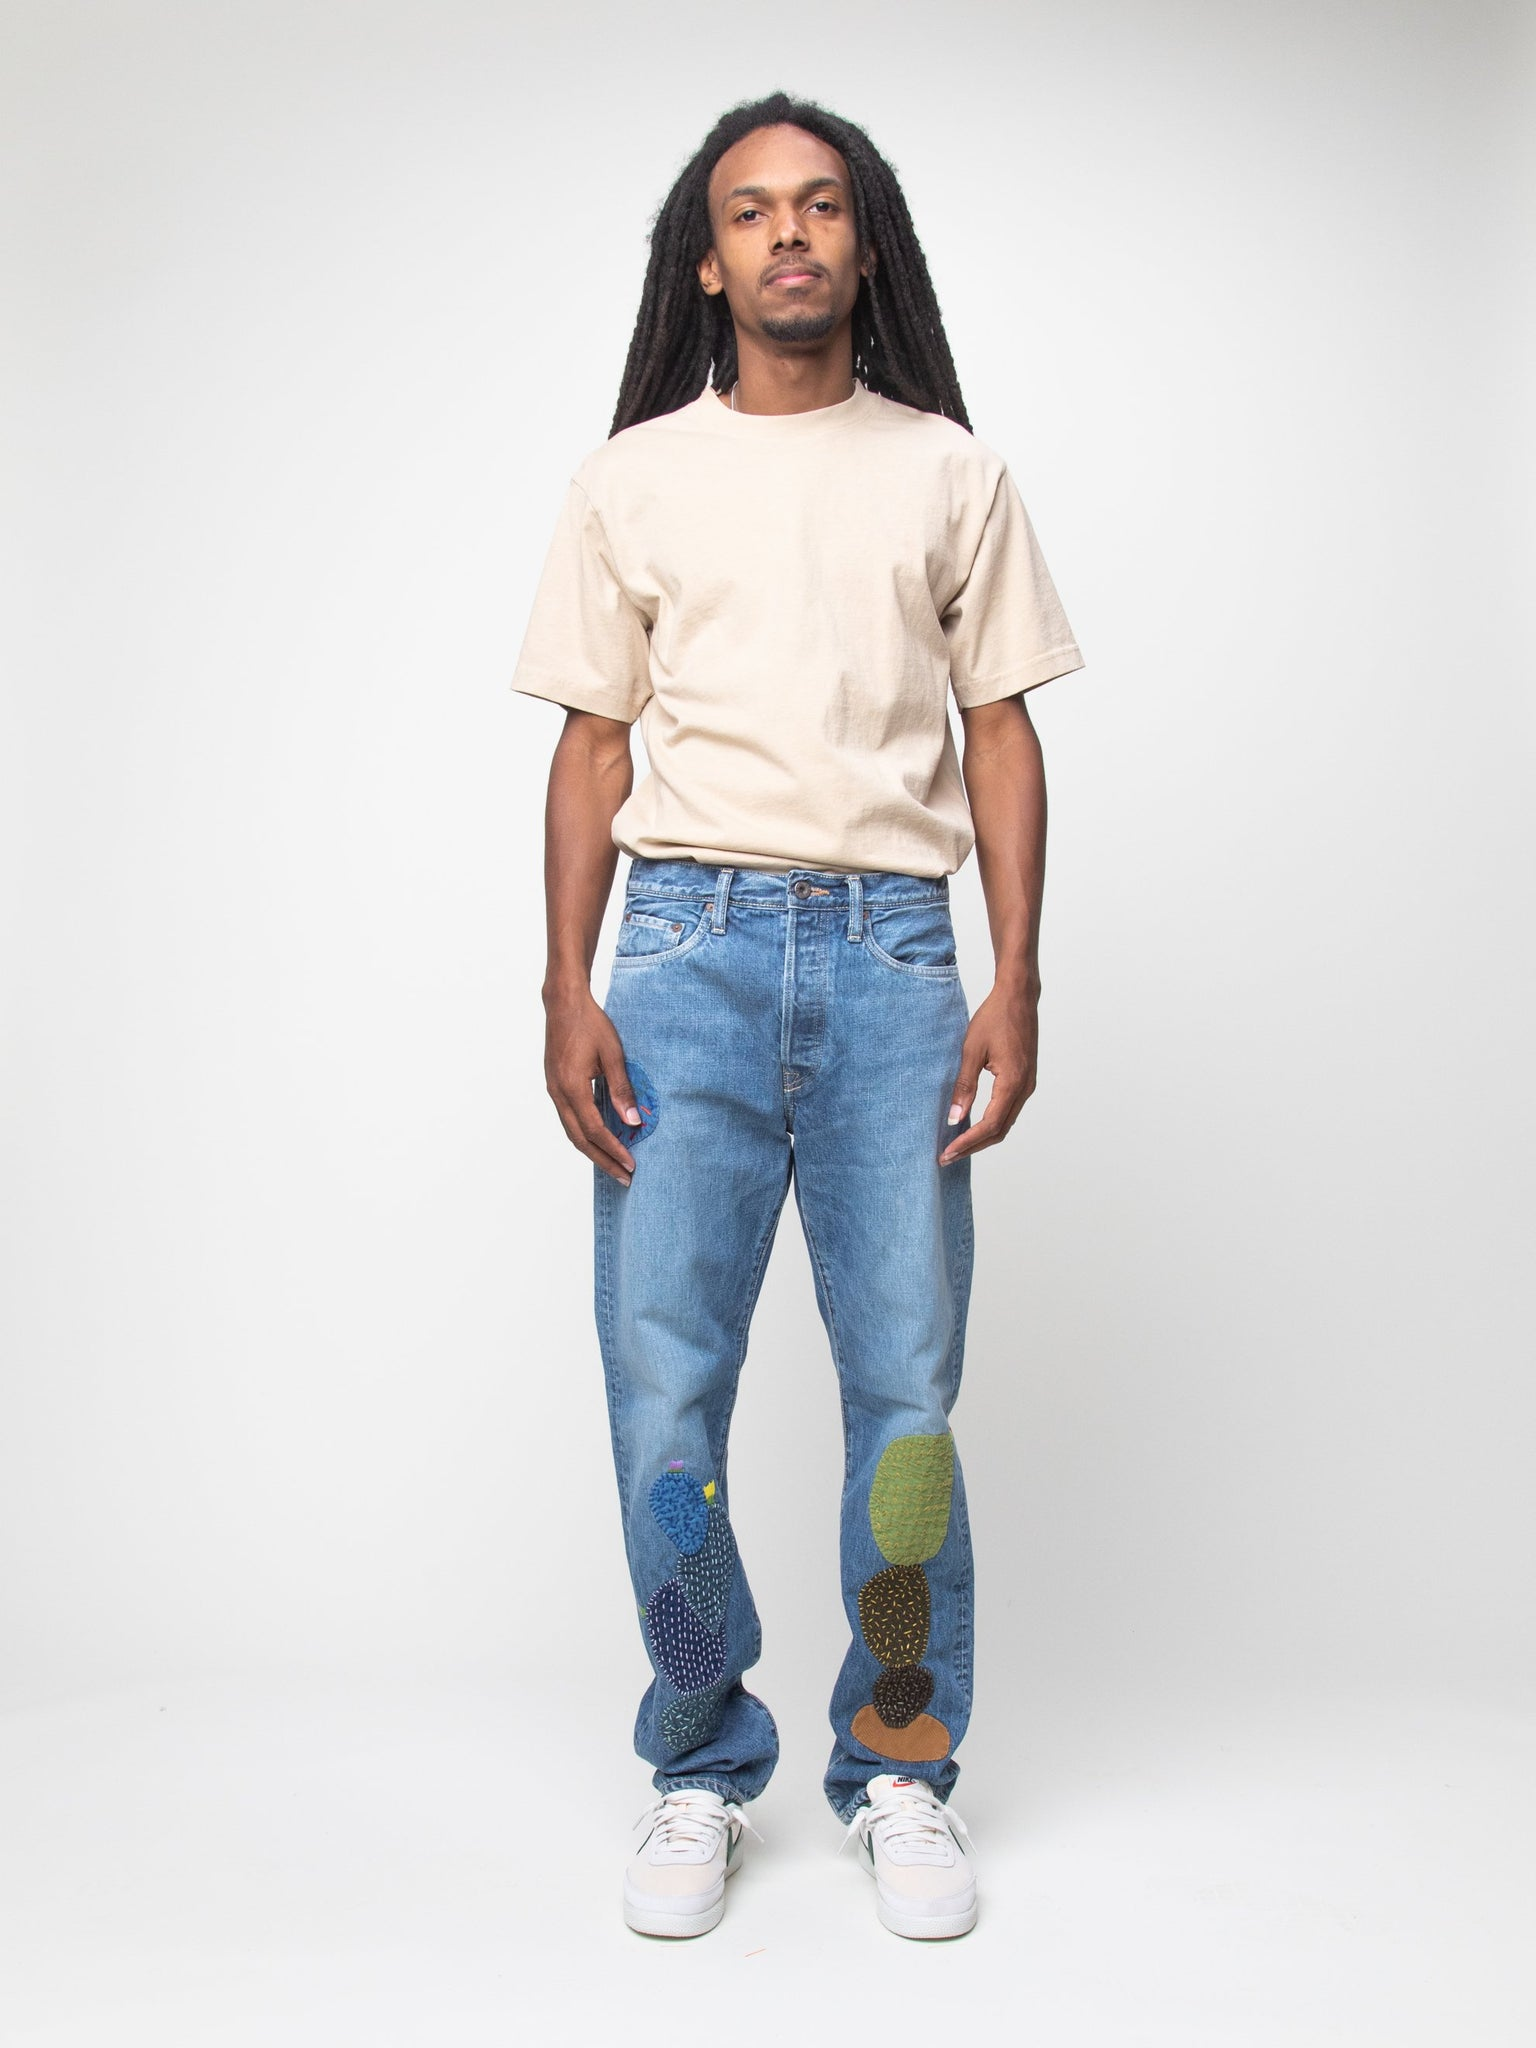 14oz-denim-5p-monkey-cisco-cactus-embroidery